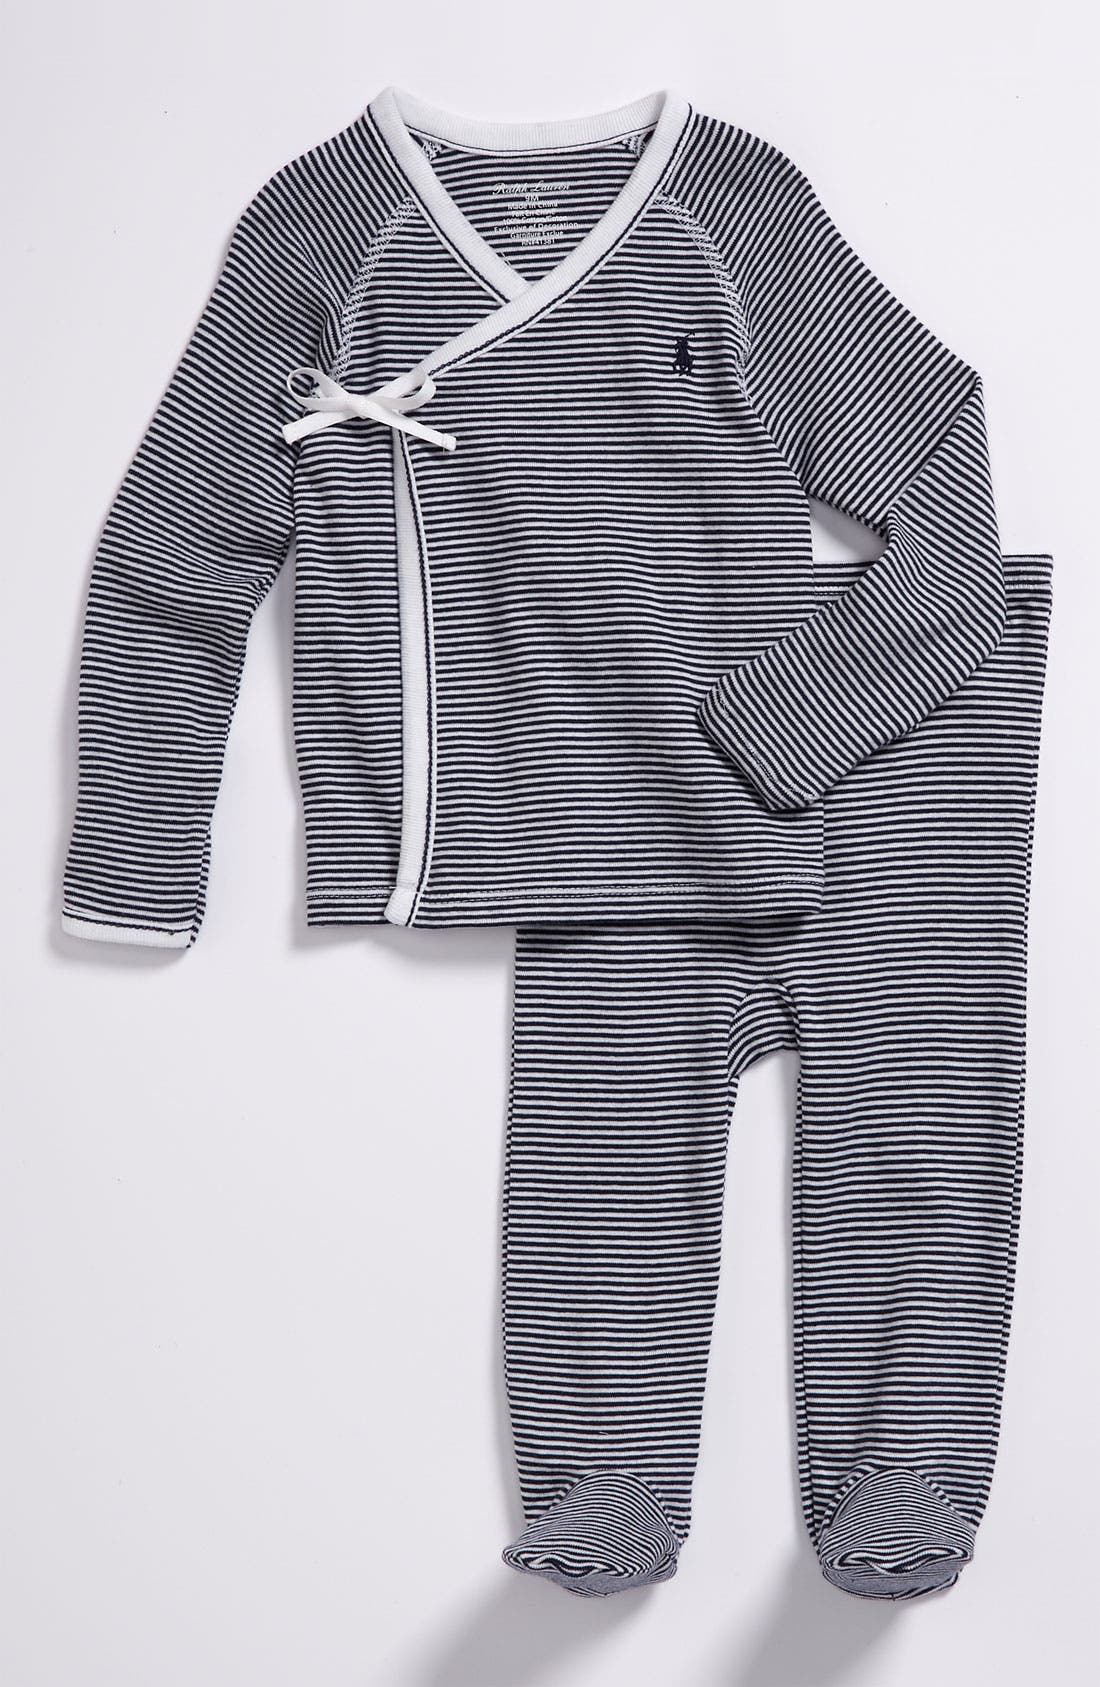 Alternate Image 1 Selected - Ralph Lauren Stripe Kimono Two-Piece Set (Baby)